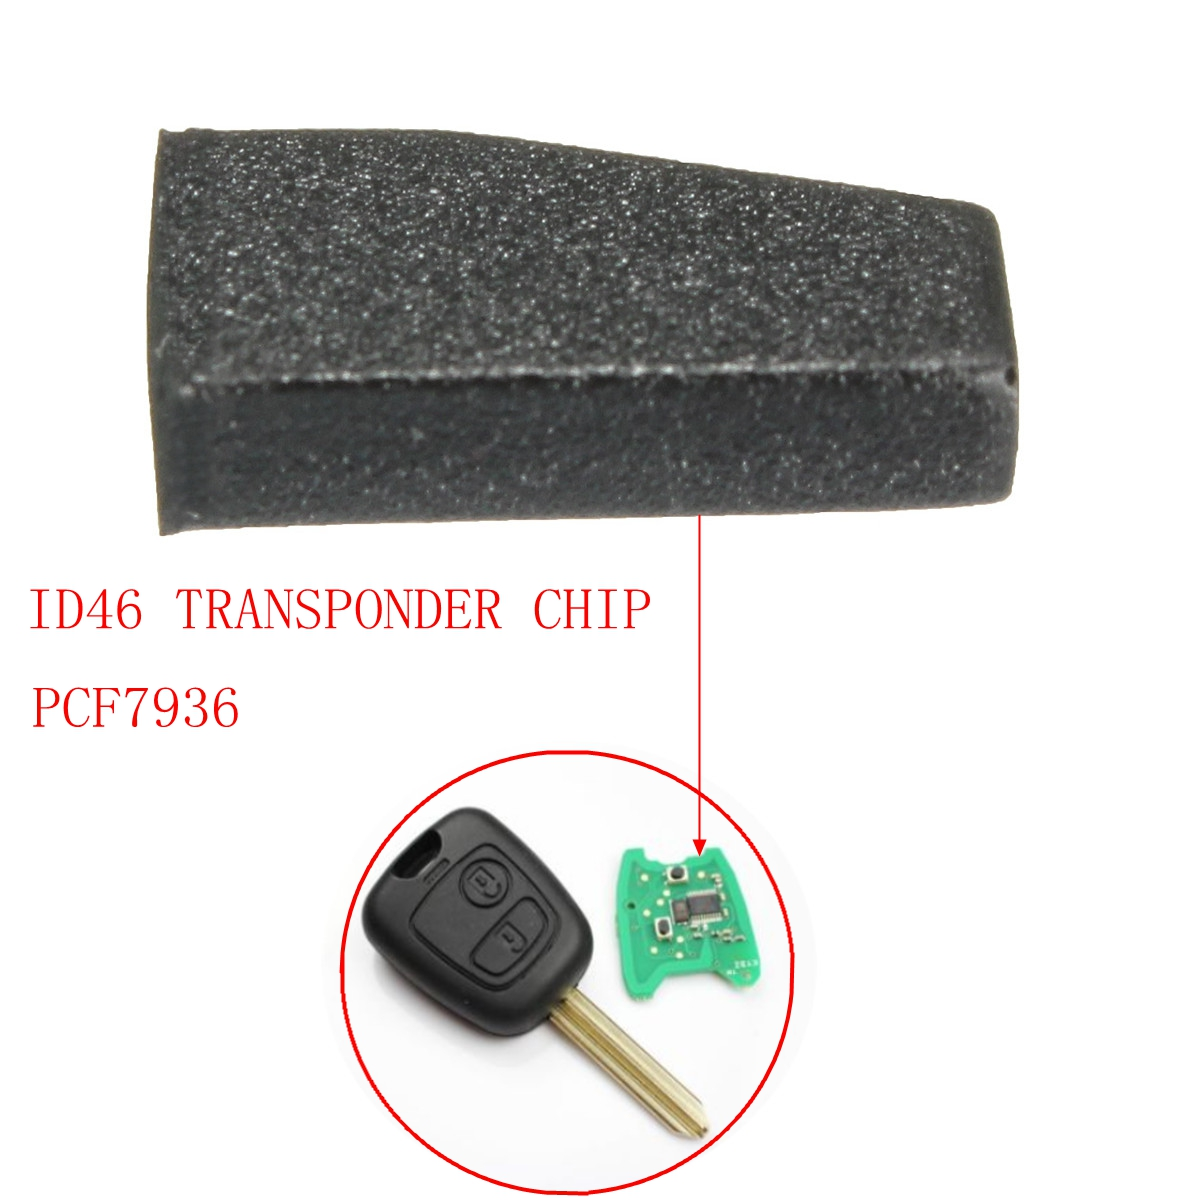 Car Key Blank ID46 PCF 7936 Virgin Transponder Chip For Peugeot Citroen C2 C3